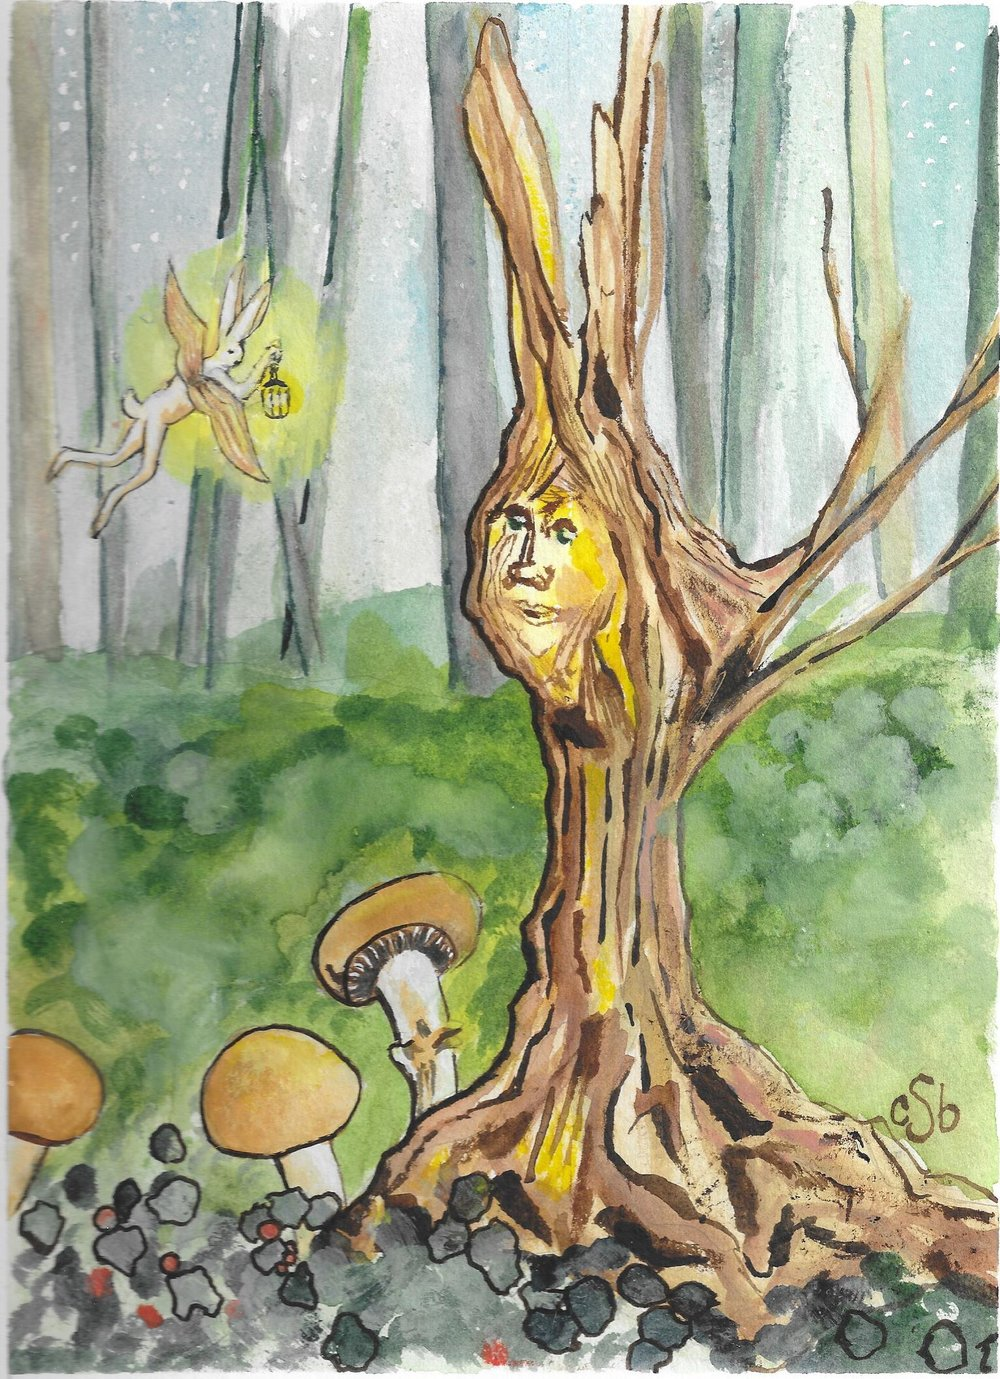 Bunny Fairy and the Old Tree